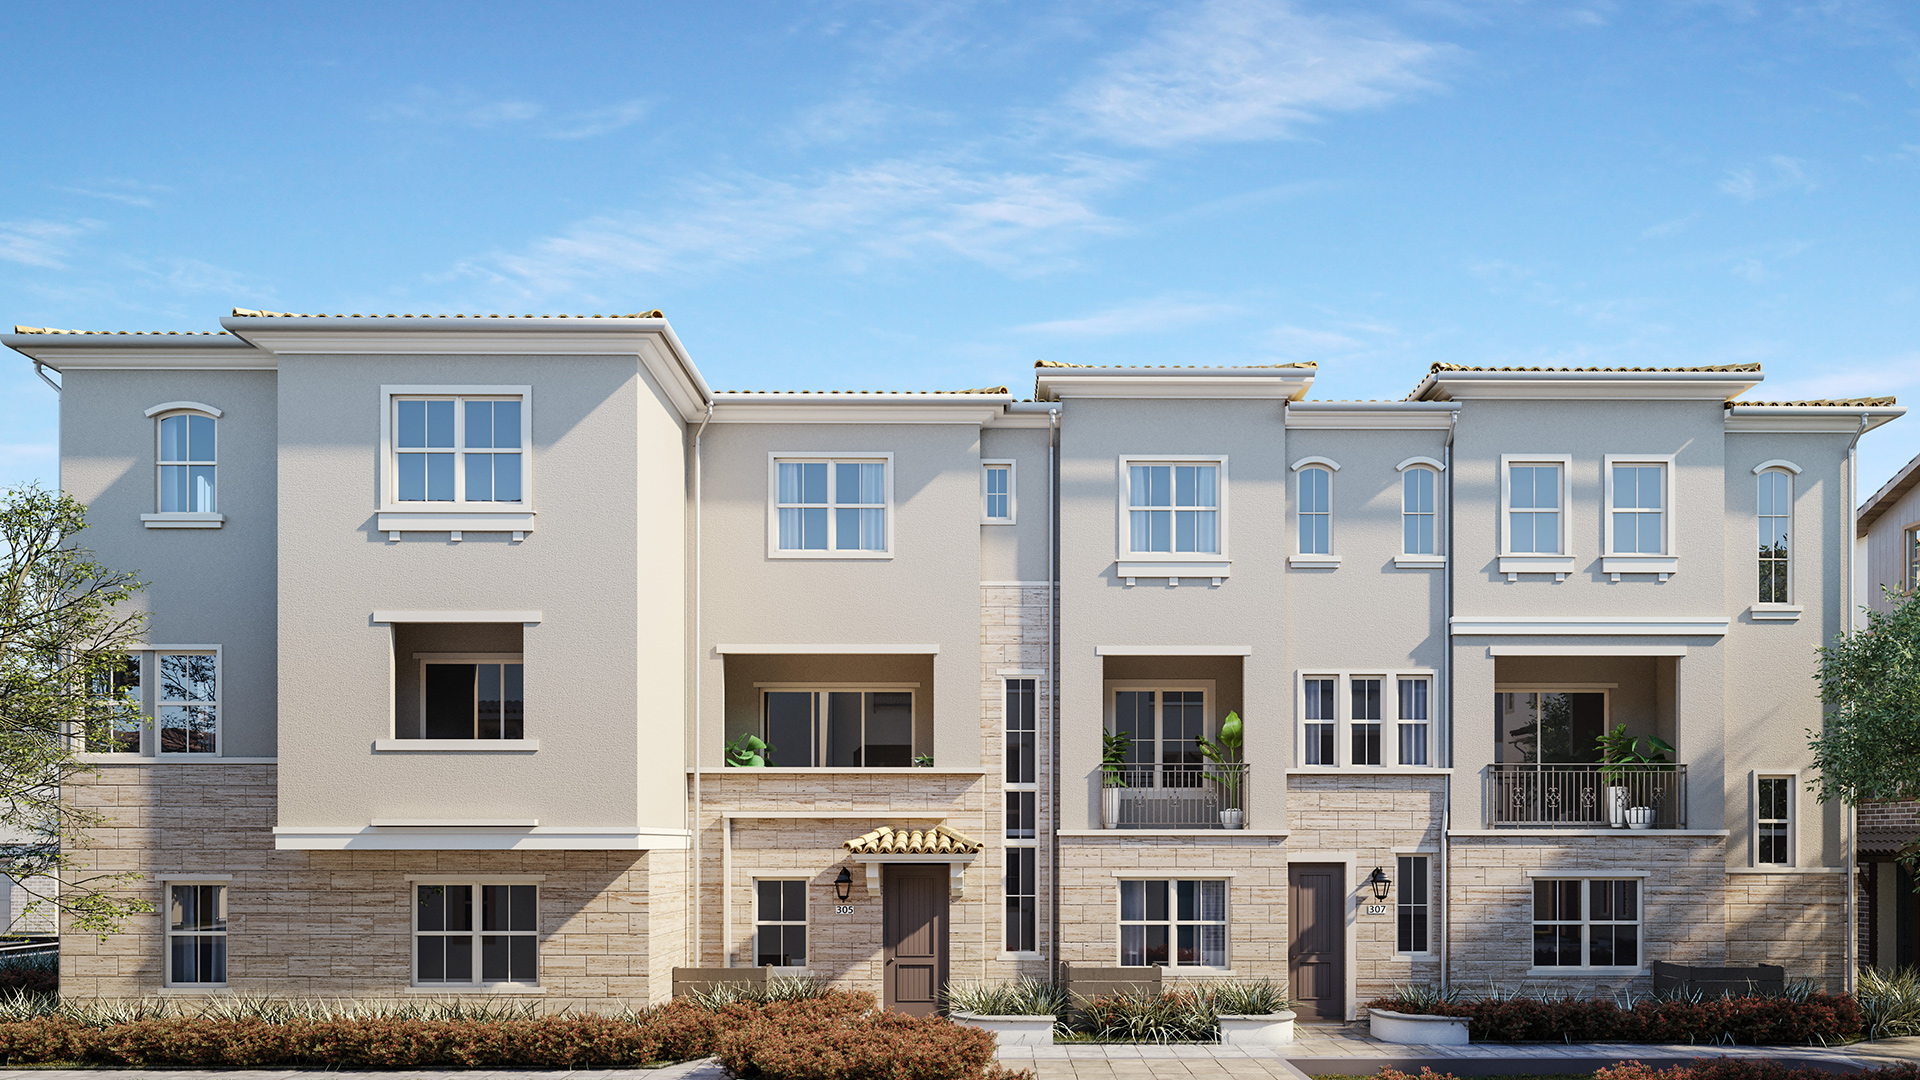 2 to 4 bedroom home designs ranging from approximately 1,200 to 1,900 square feet